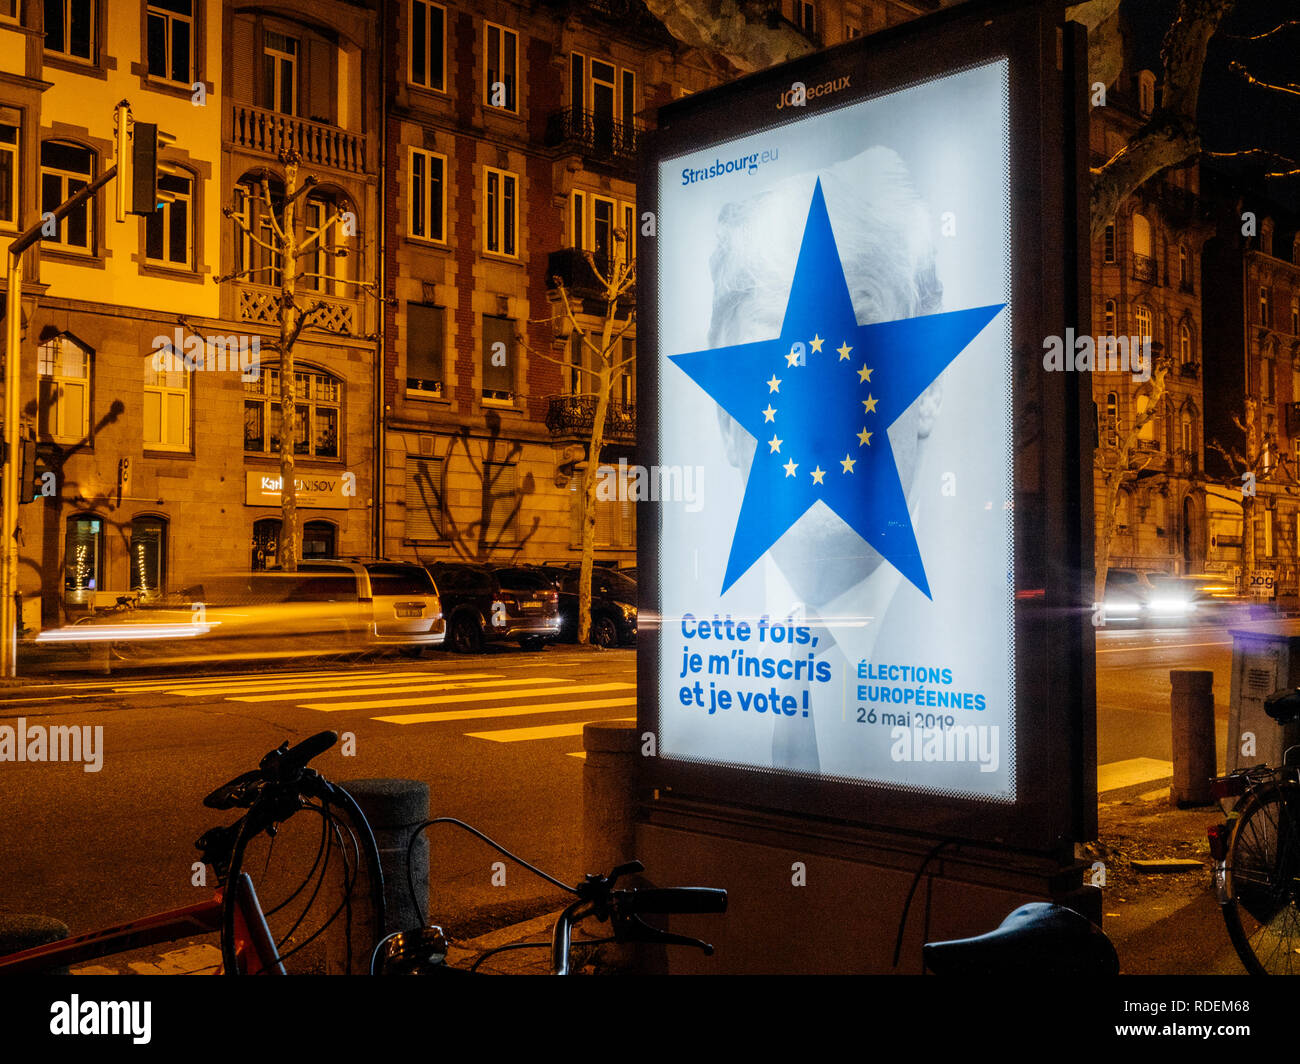 Strasbourg, France - Nov 25, 2018: Bright advertsimg billboard in the night city with ad for the upcoming 2019 European Parliament election to be held in 23 26 May 2019 with Donald Trump allusion - Stock Image